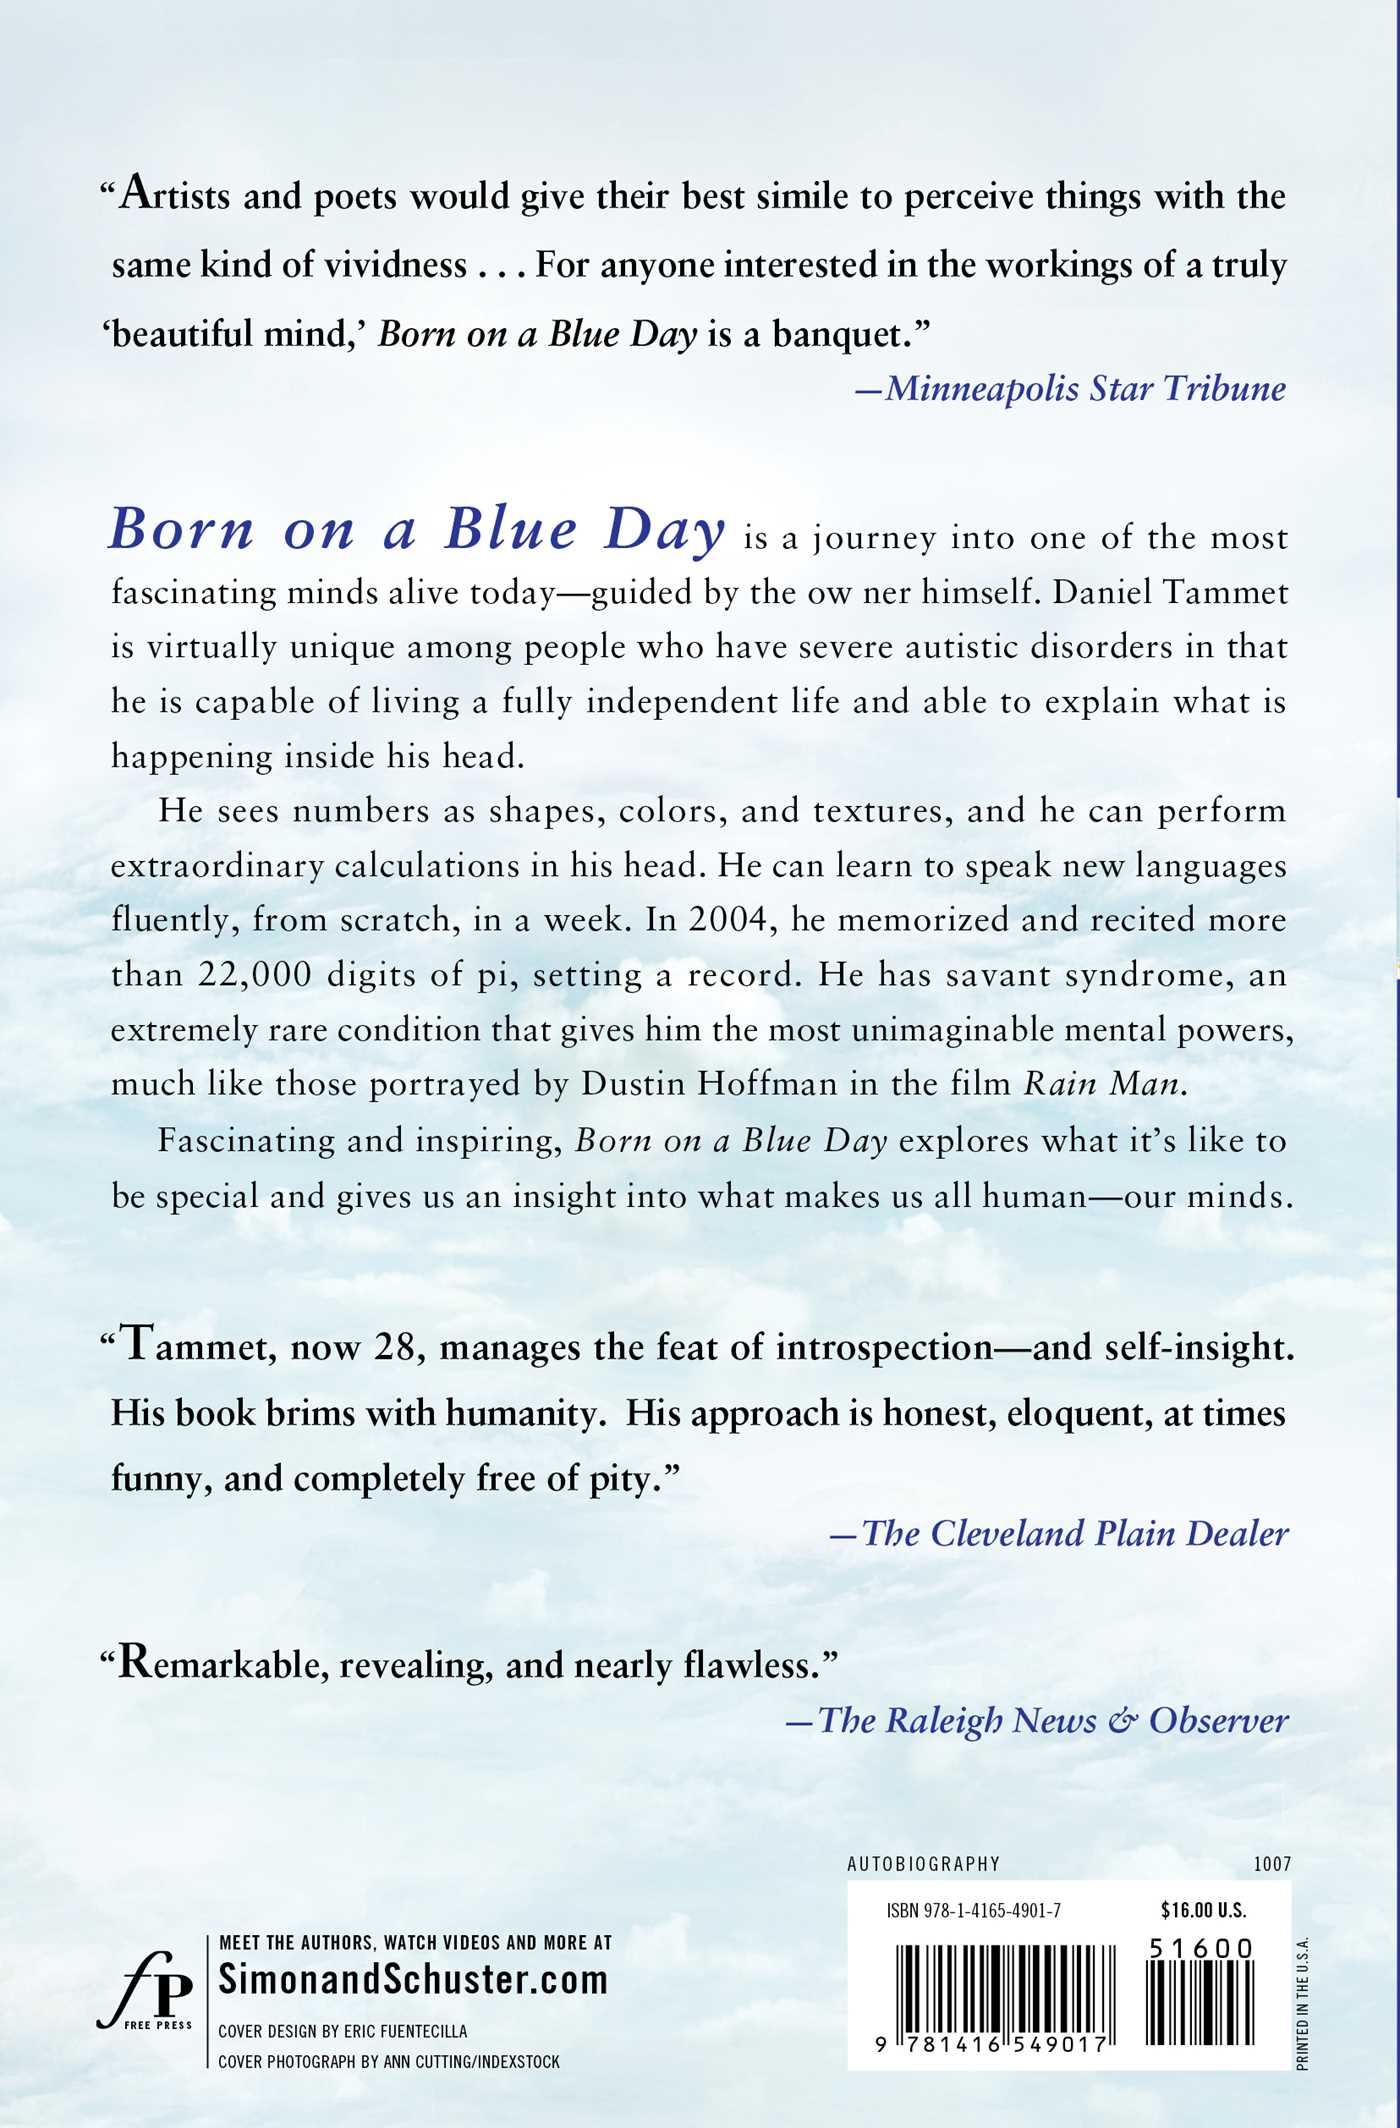 Born on a blue day 9781416549017 hr back